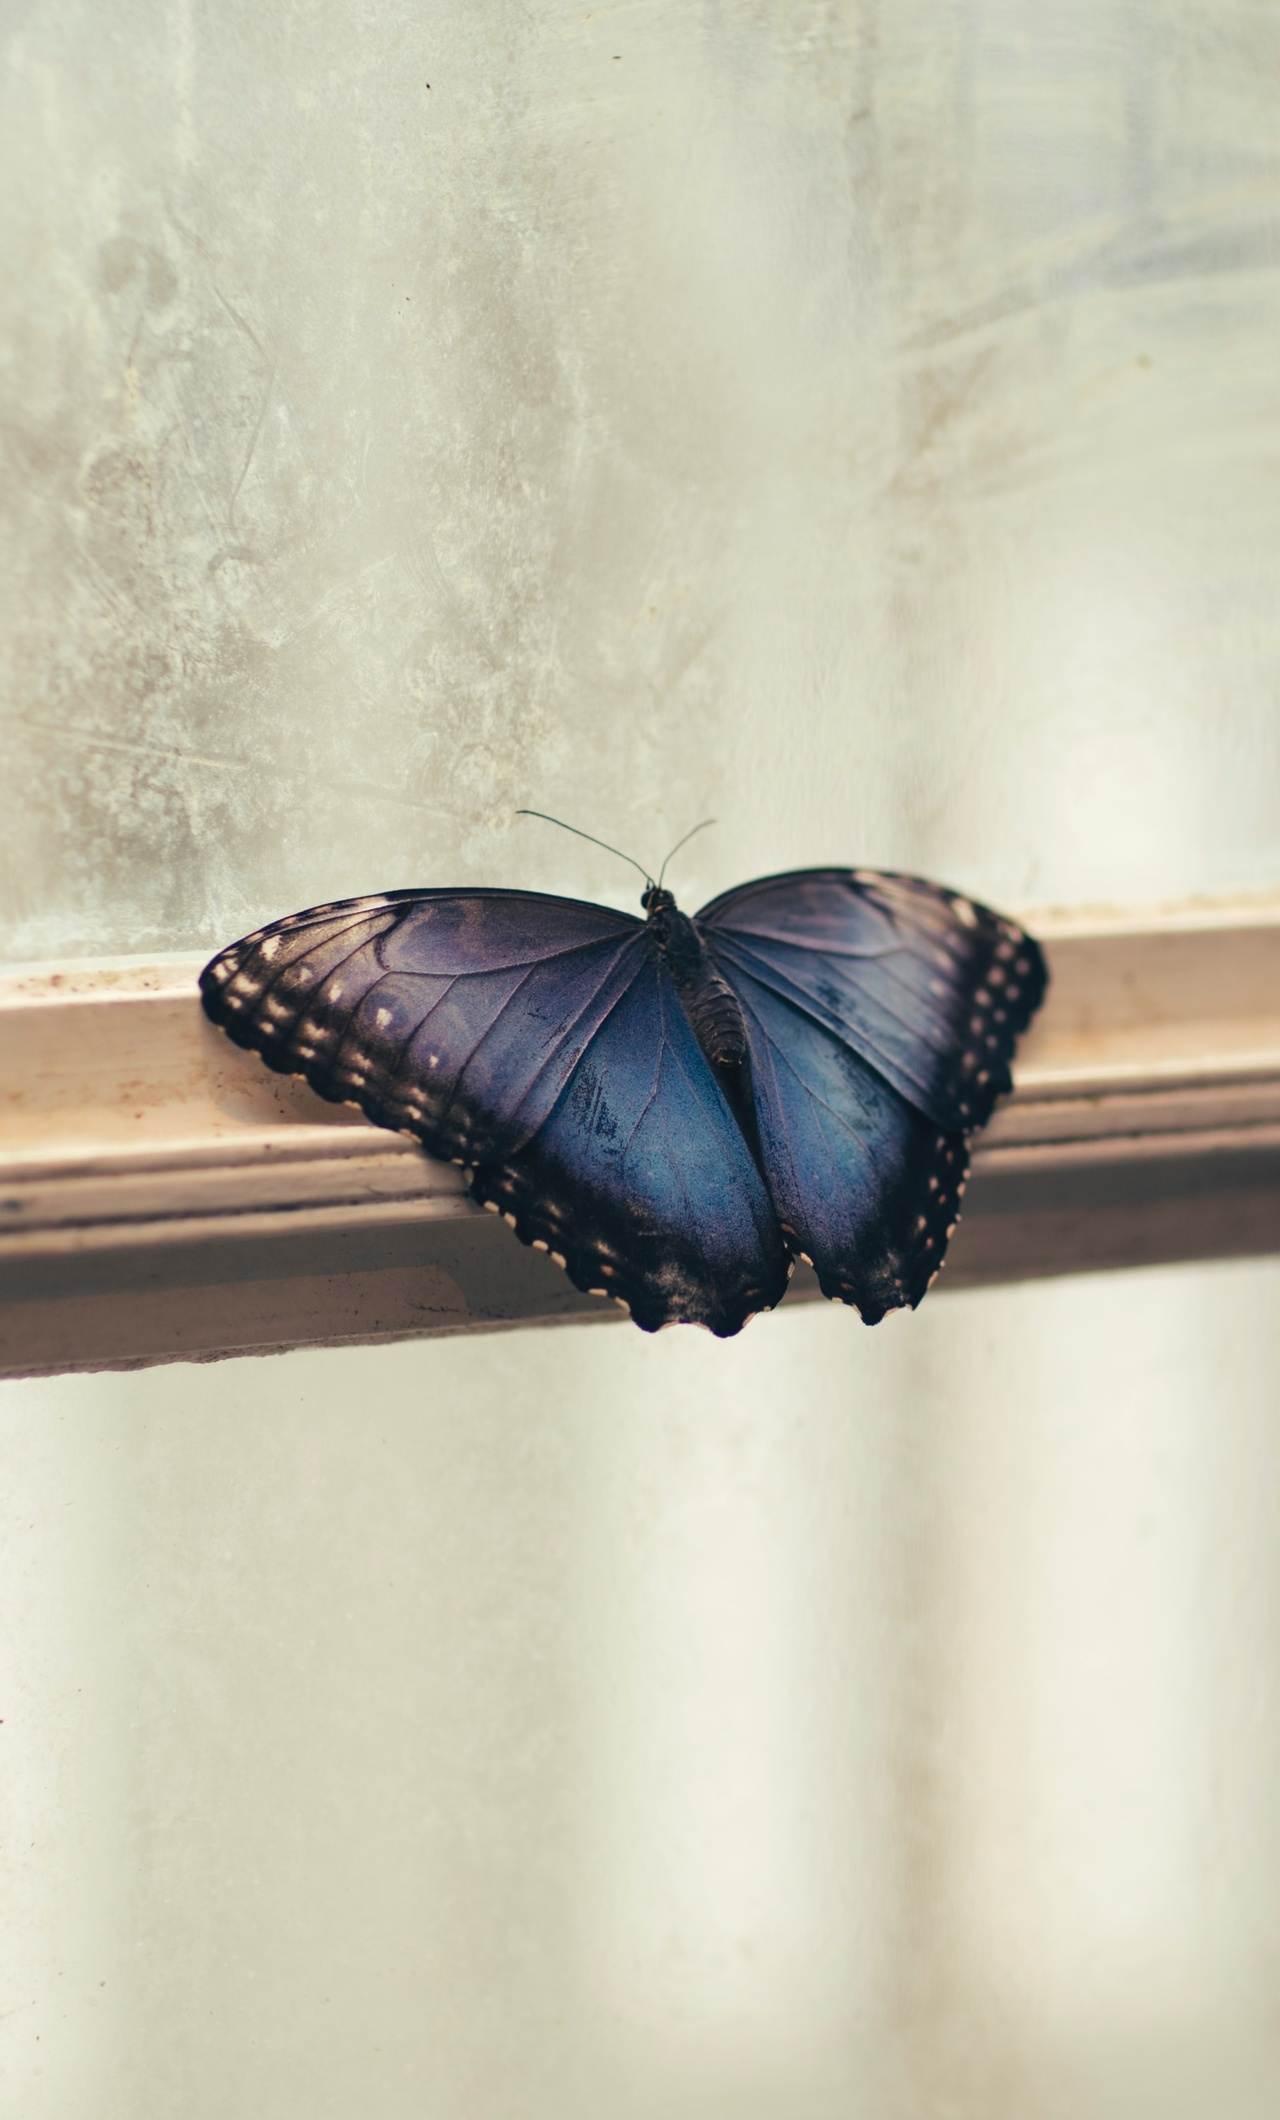 butterfly-sitting-on-window-side-5k-4q.jpg